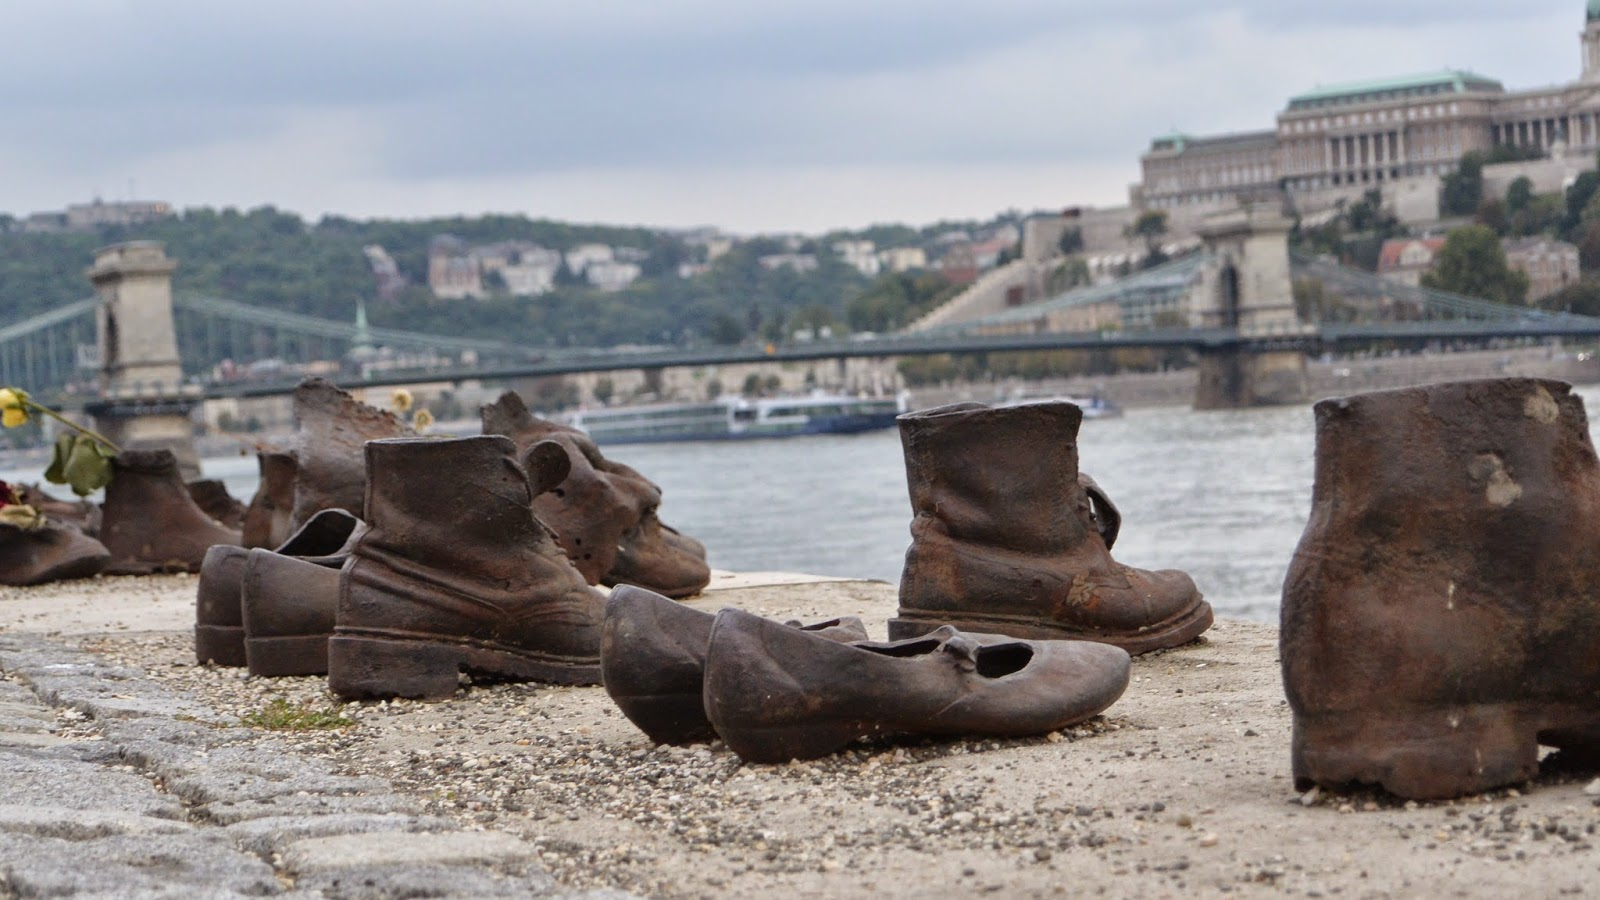 le songe photographe chaussures budapest